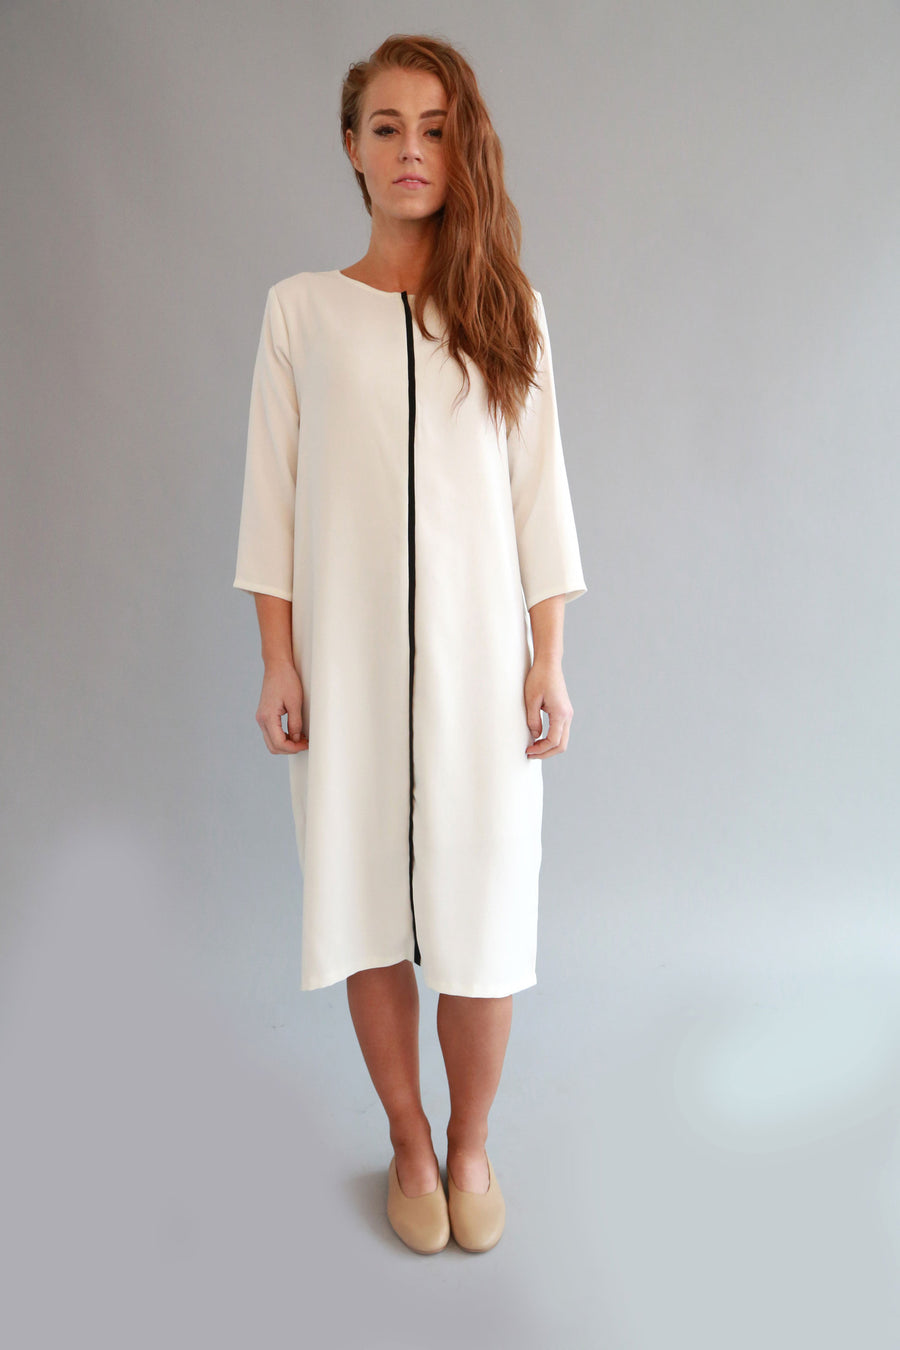 WHITE LEIA DRESS - SOLIKA